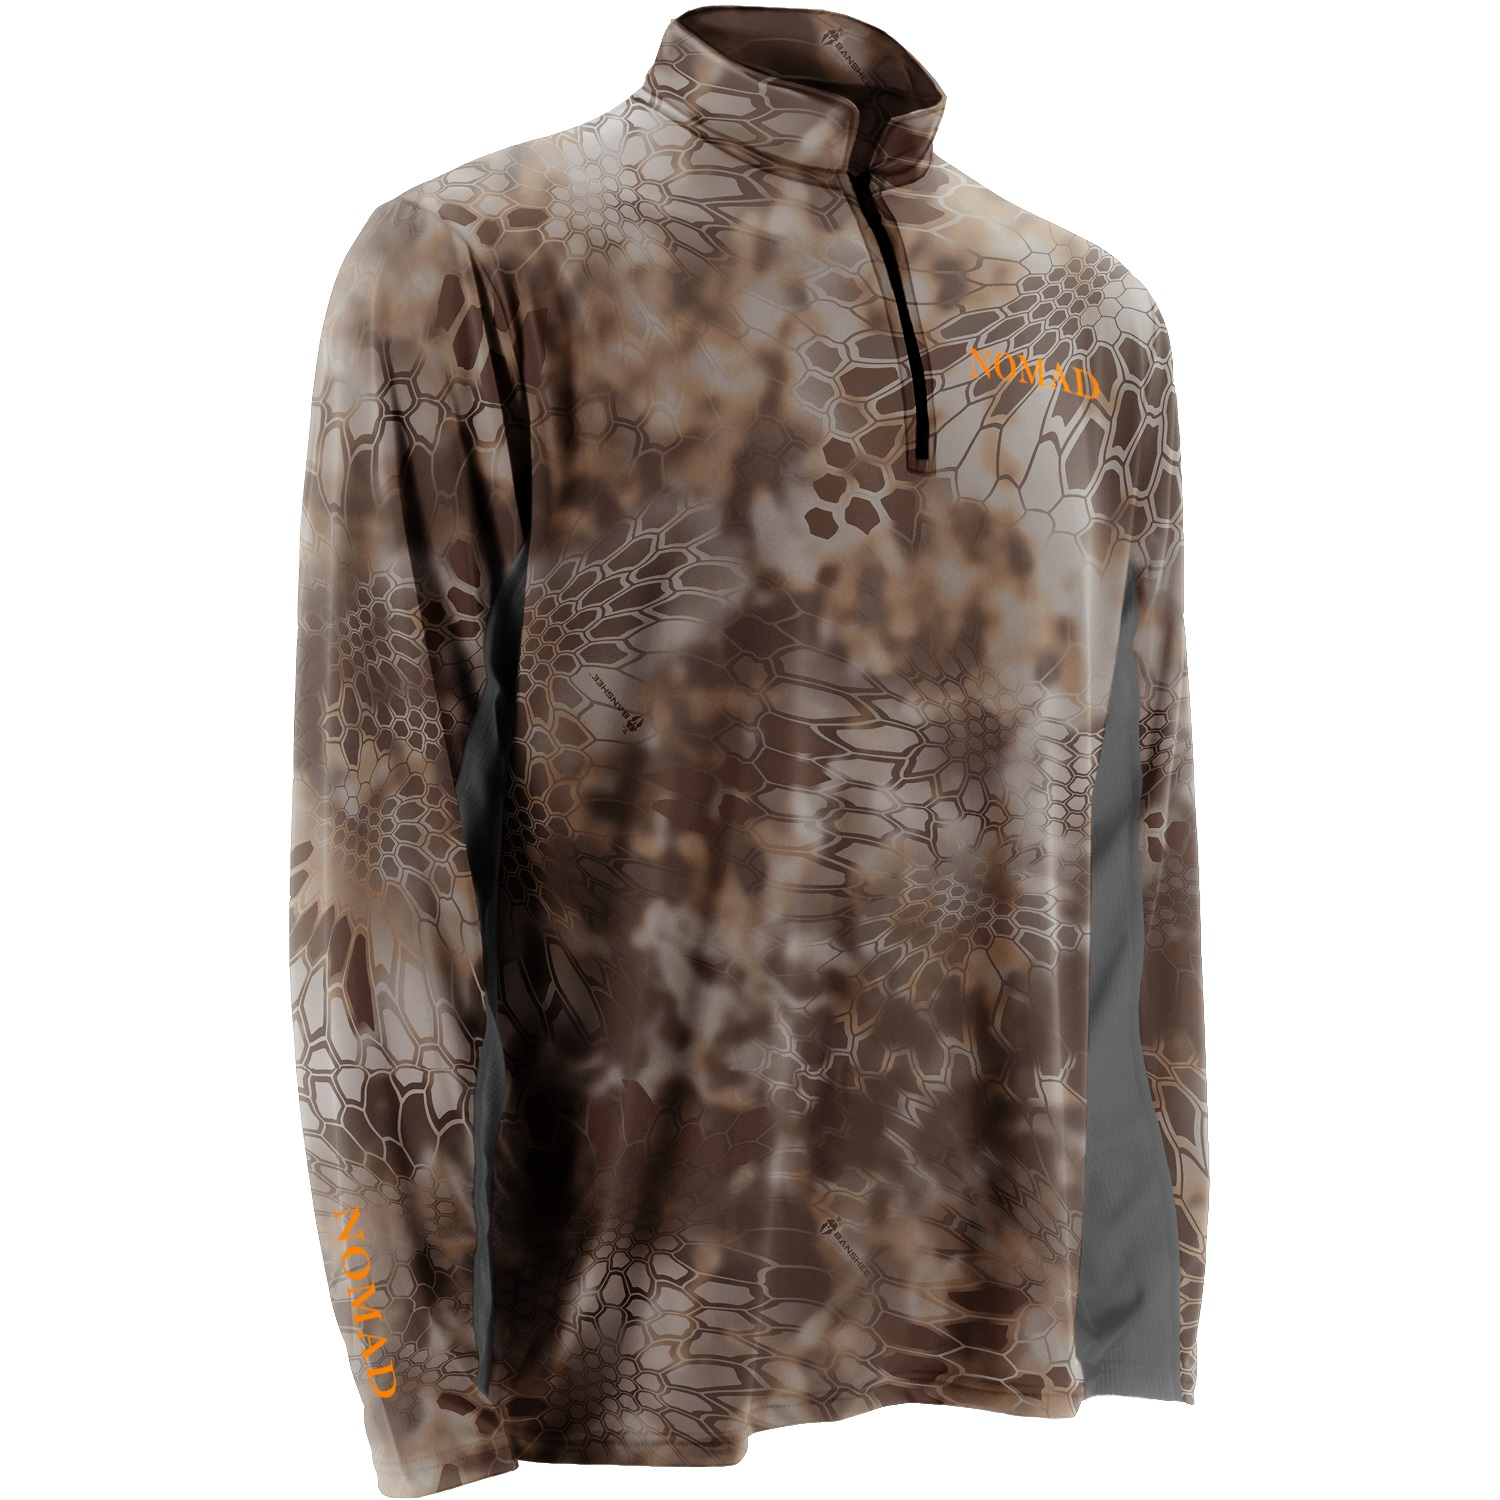 Nomad Men's 1/4 Zip Hunting Tee - Kryptek Banshee - Size X Large